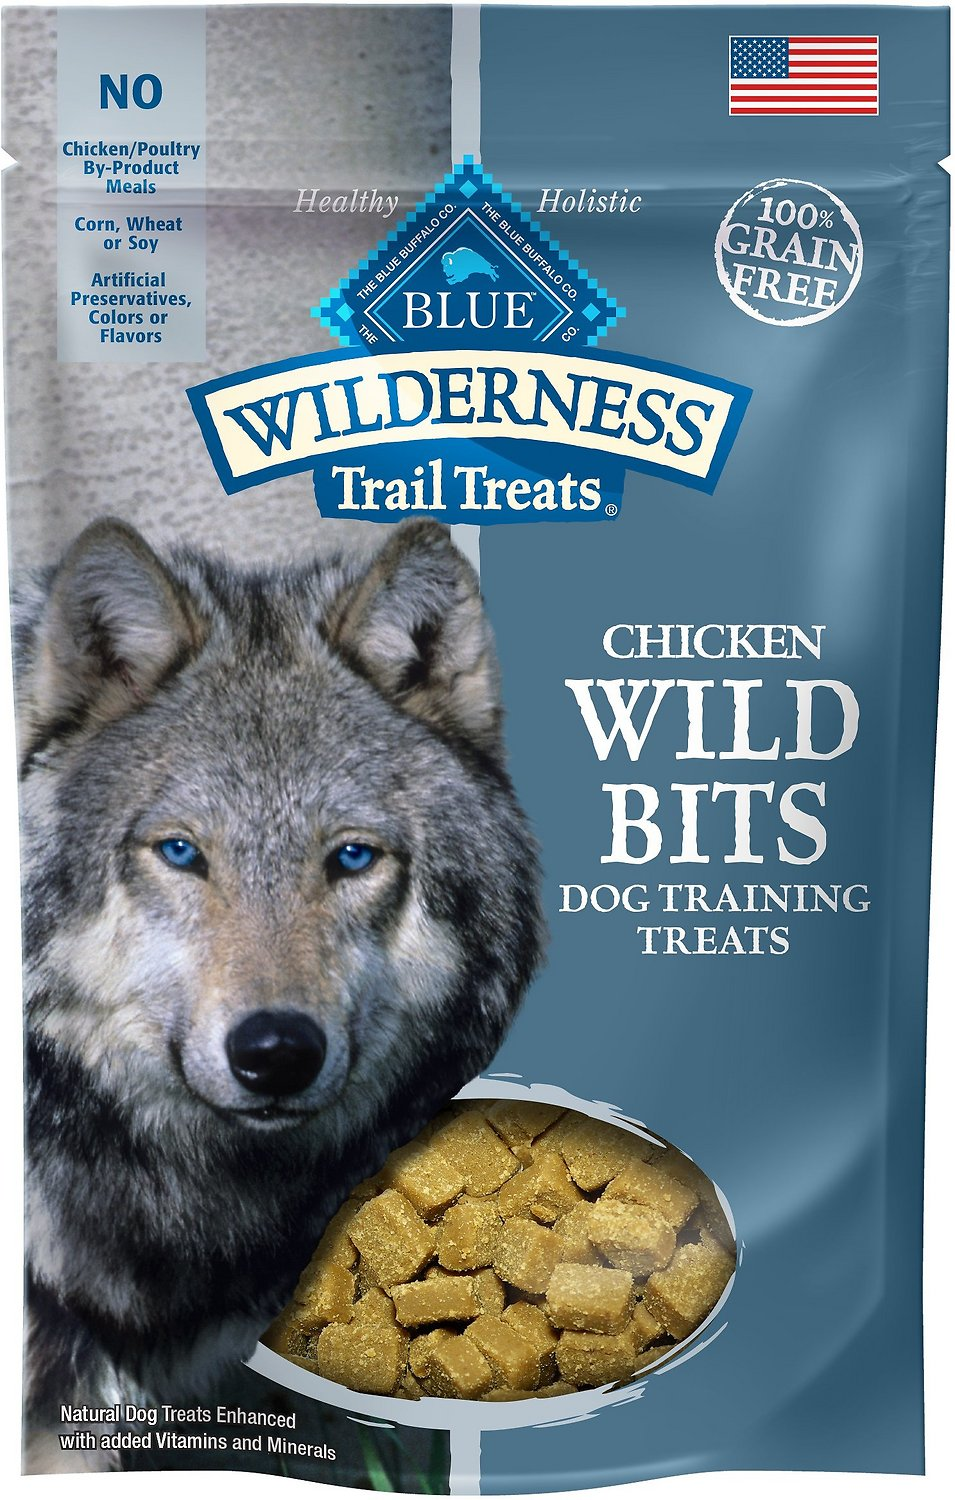 Blue Buffalo Wilderness Trail Treats Chicken Wild Bits Grain-Free Training Dog Treats, 4-oz bag